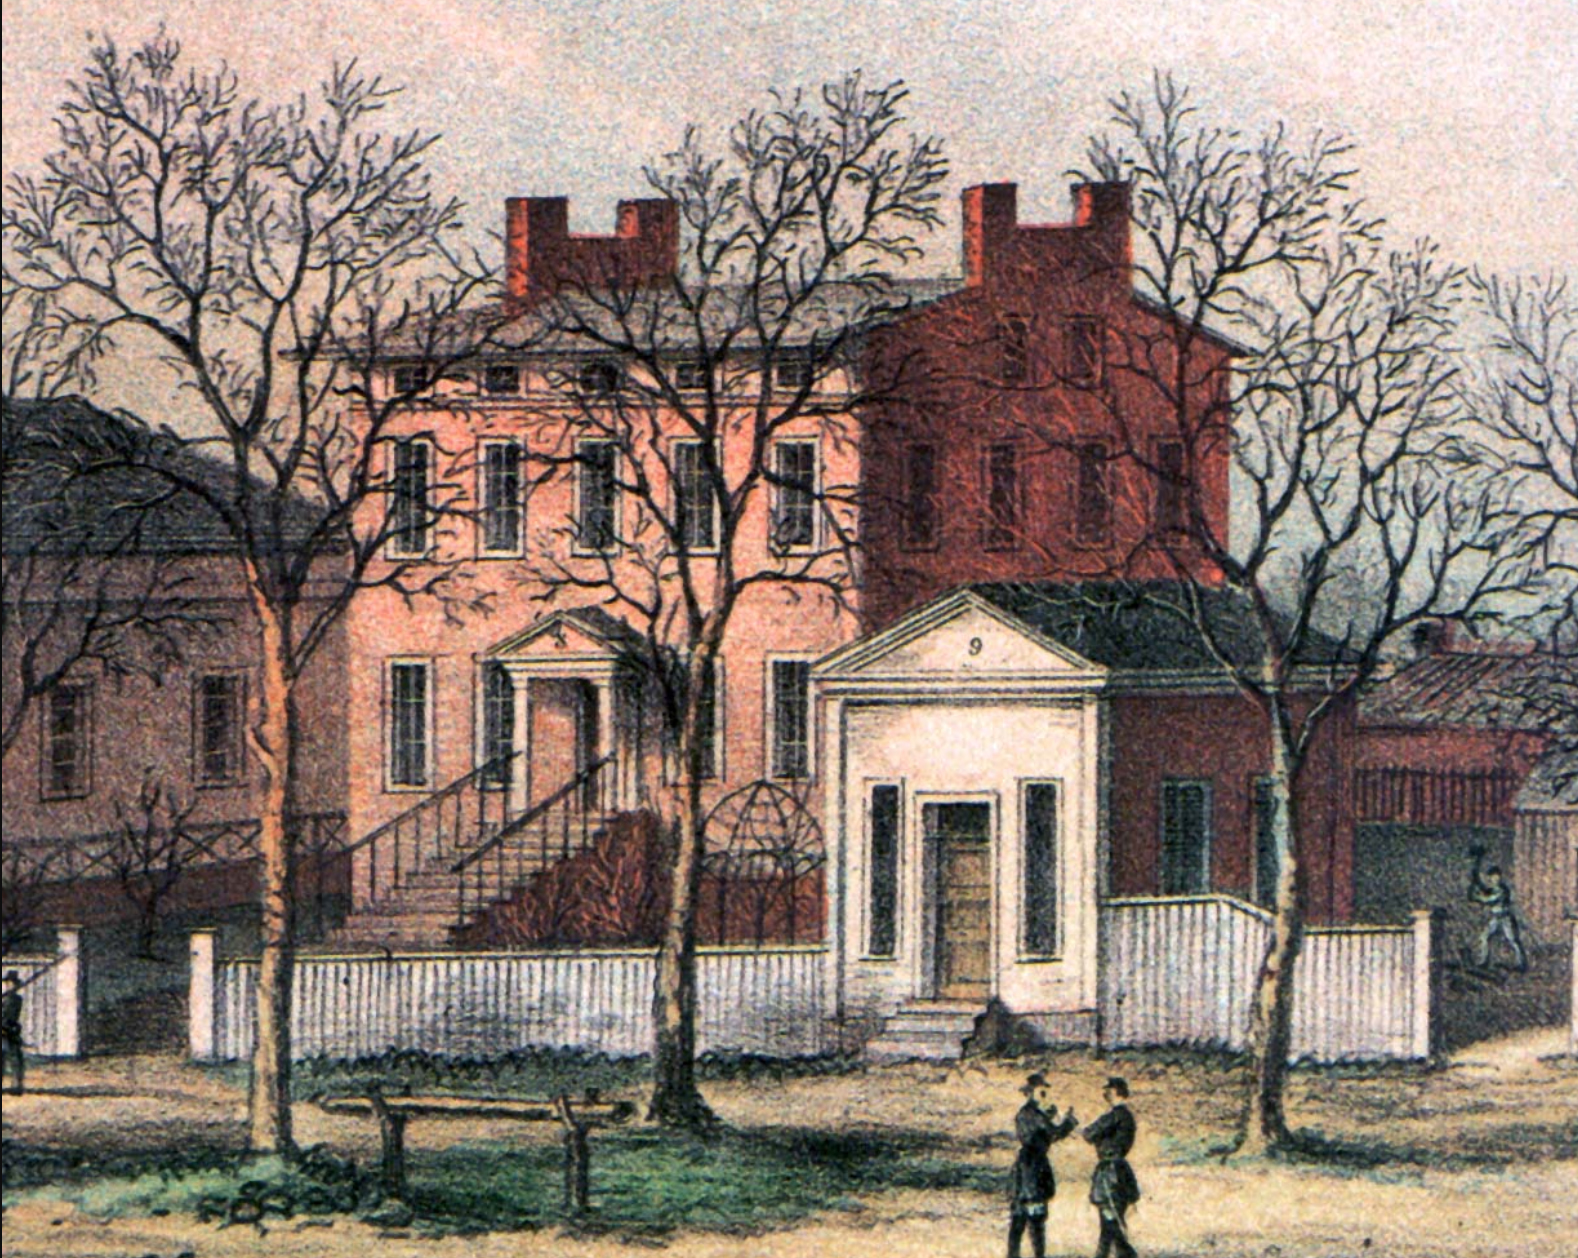 Historic view of the Riddick House. Source: http://riddicksfolly.org/wp-content/uploads/2014/01/LithoScana.jpg